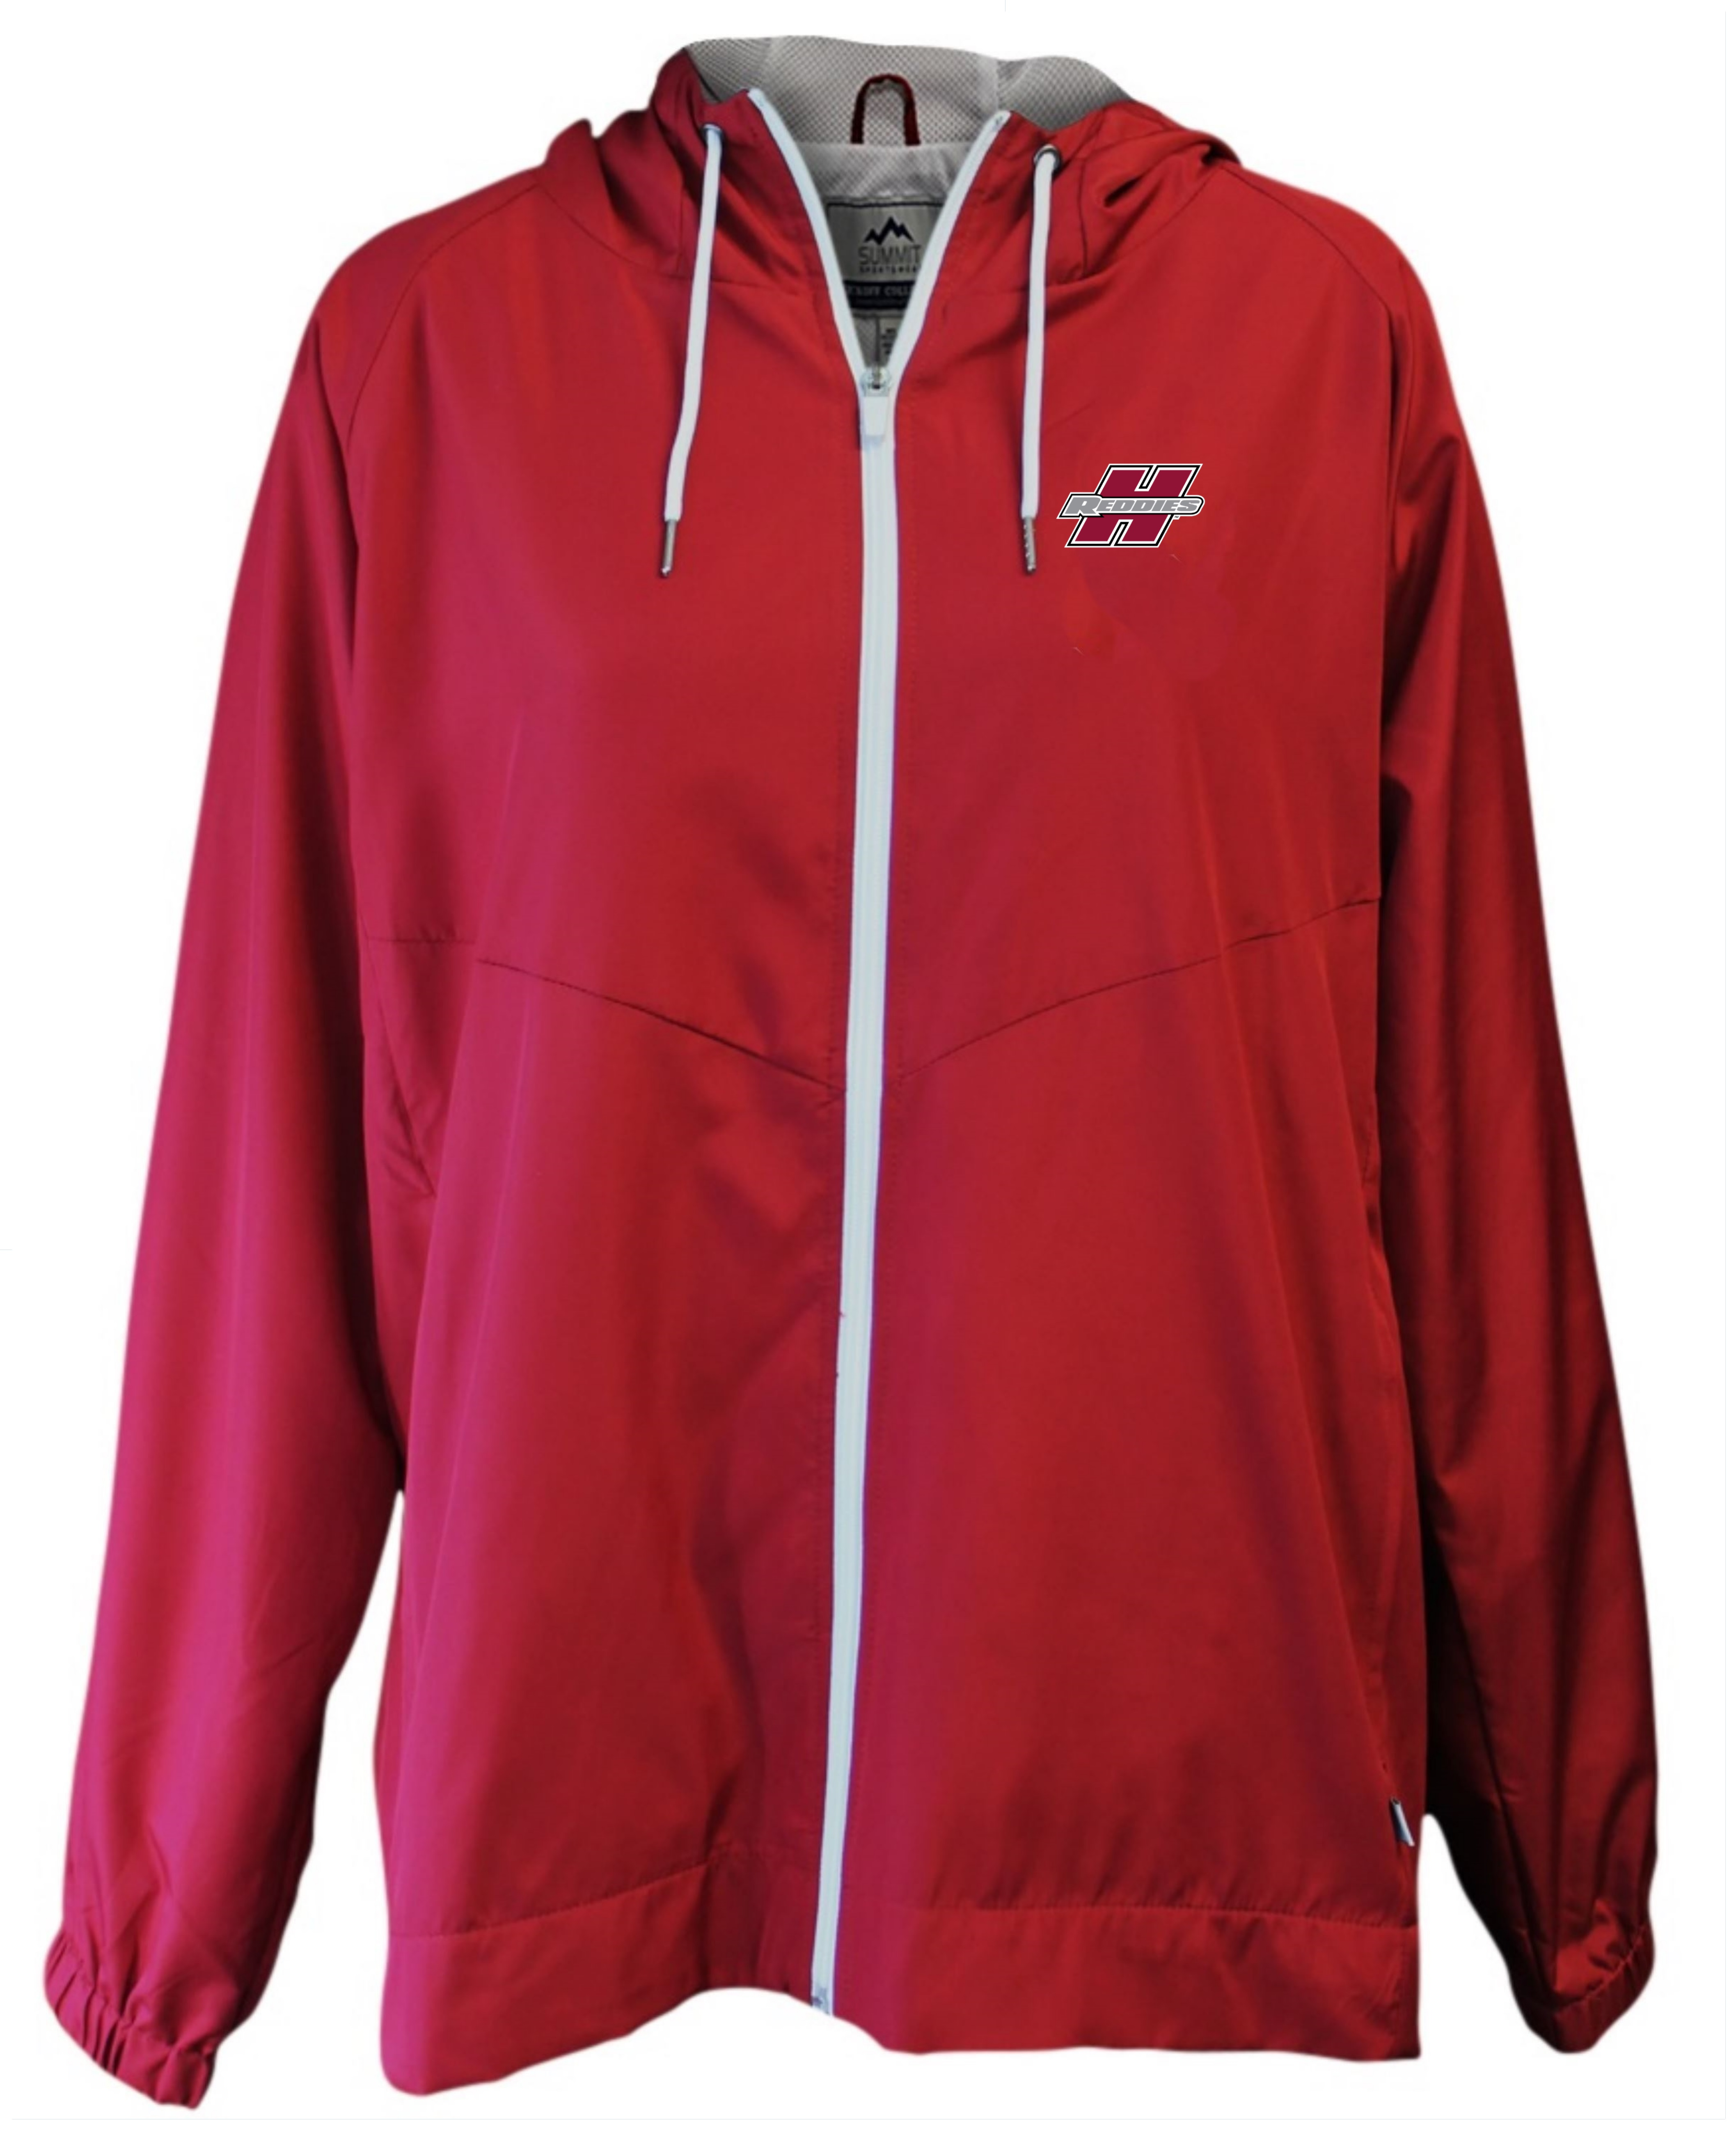 Henderson Reddies Full Zip Hooded Rain Jacket